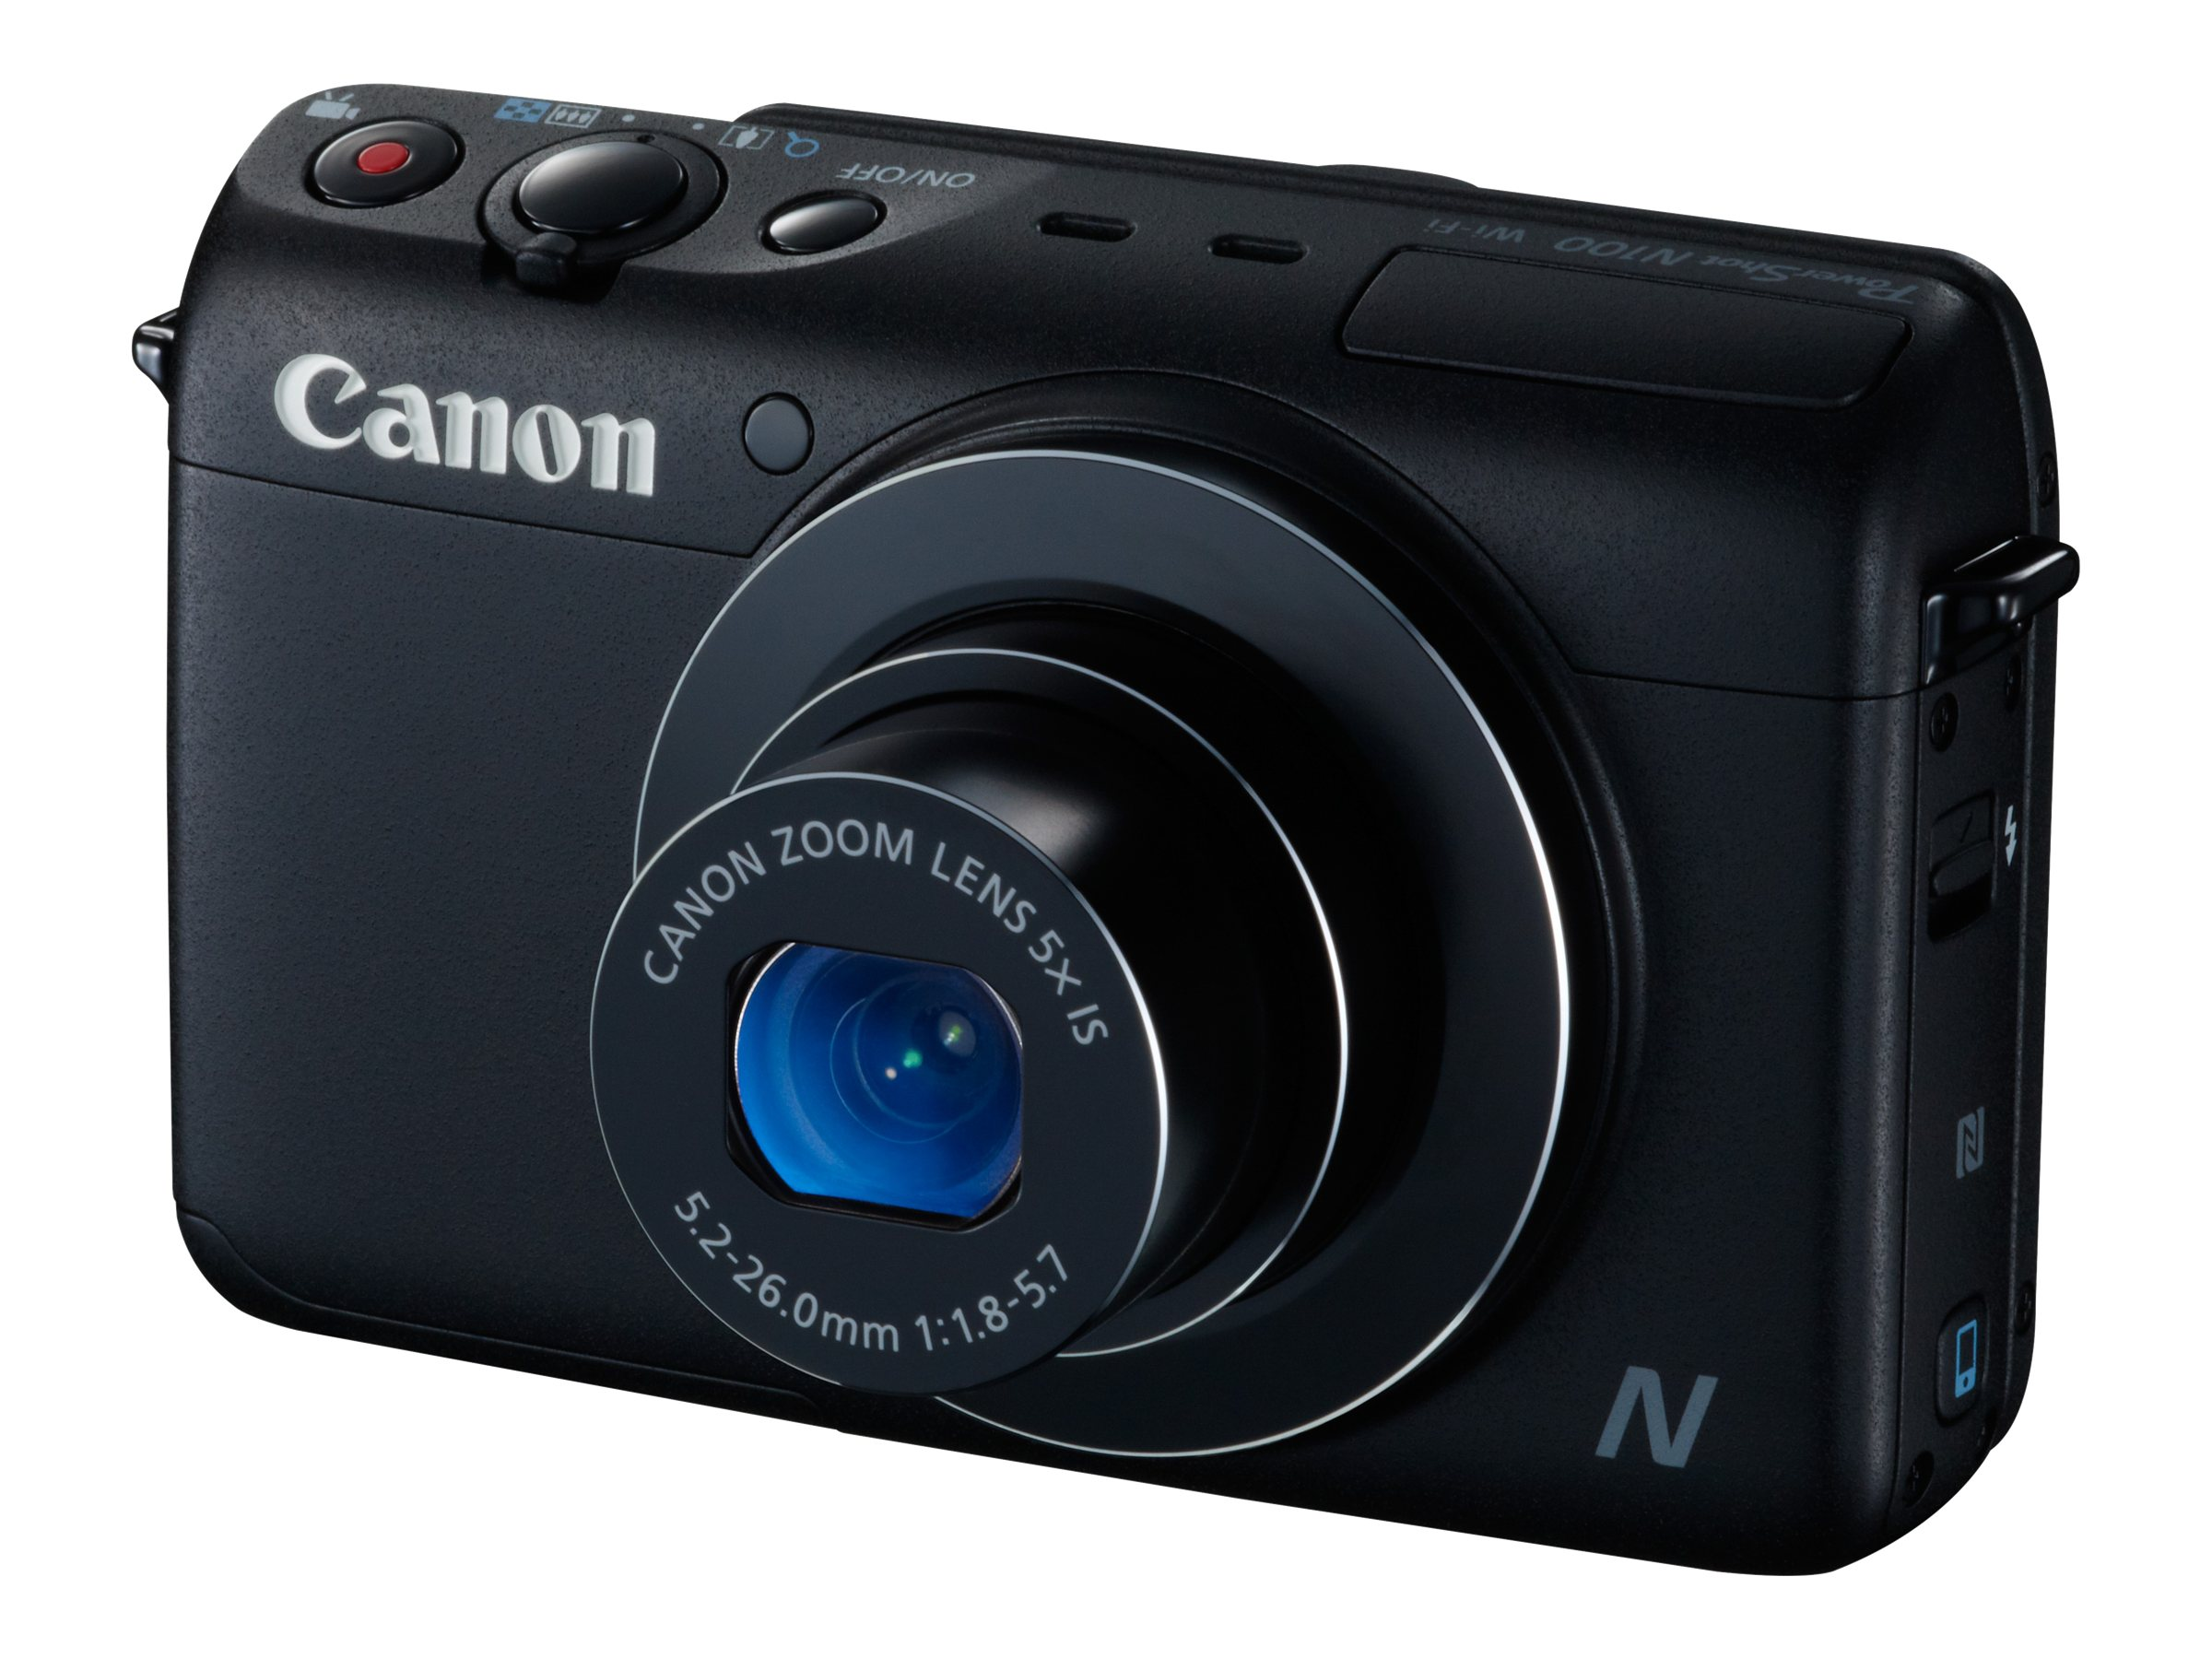 Canon PowerShot N100 Digital Camera, Black, 9168B001, 16683660, Cameras - Digital - Point & Shoot